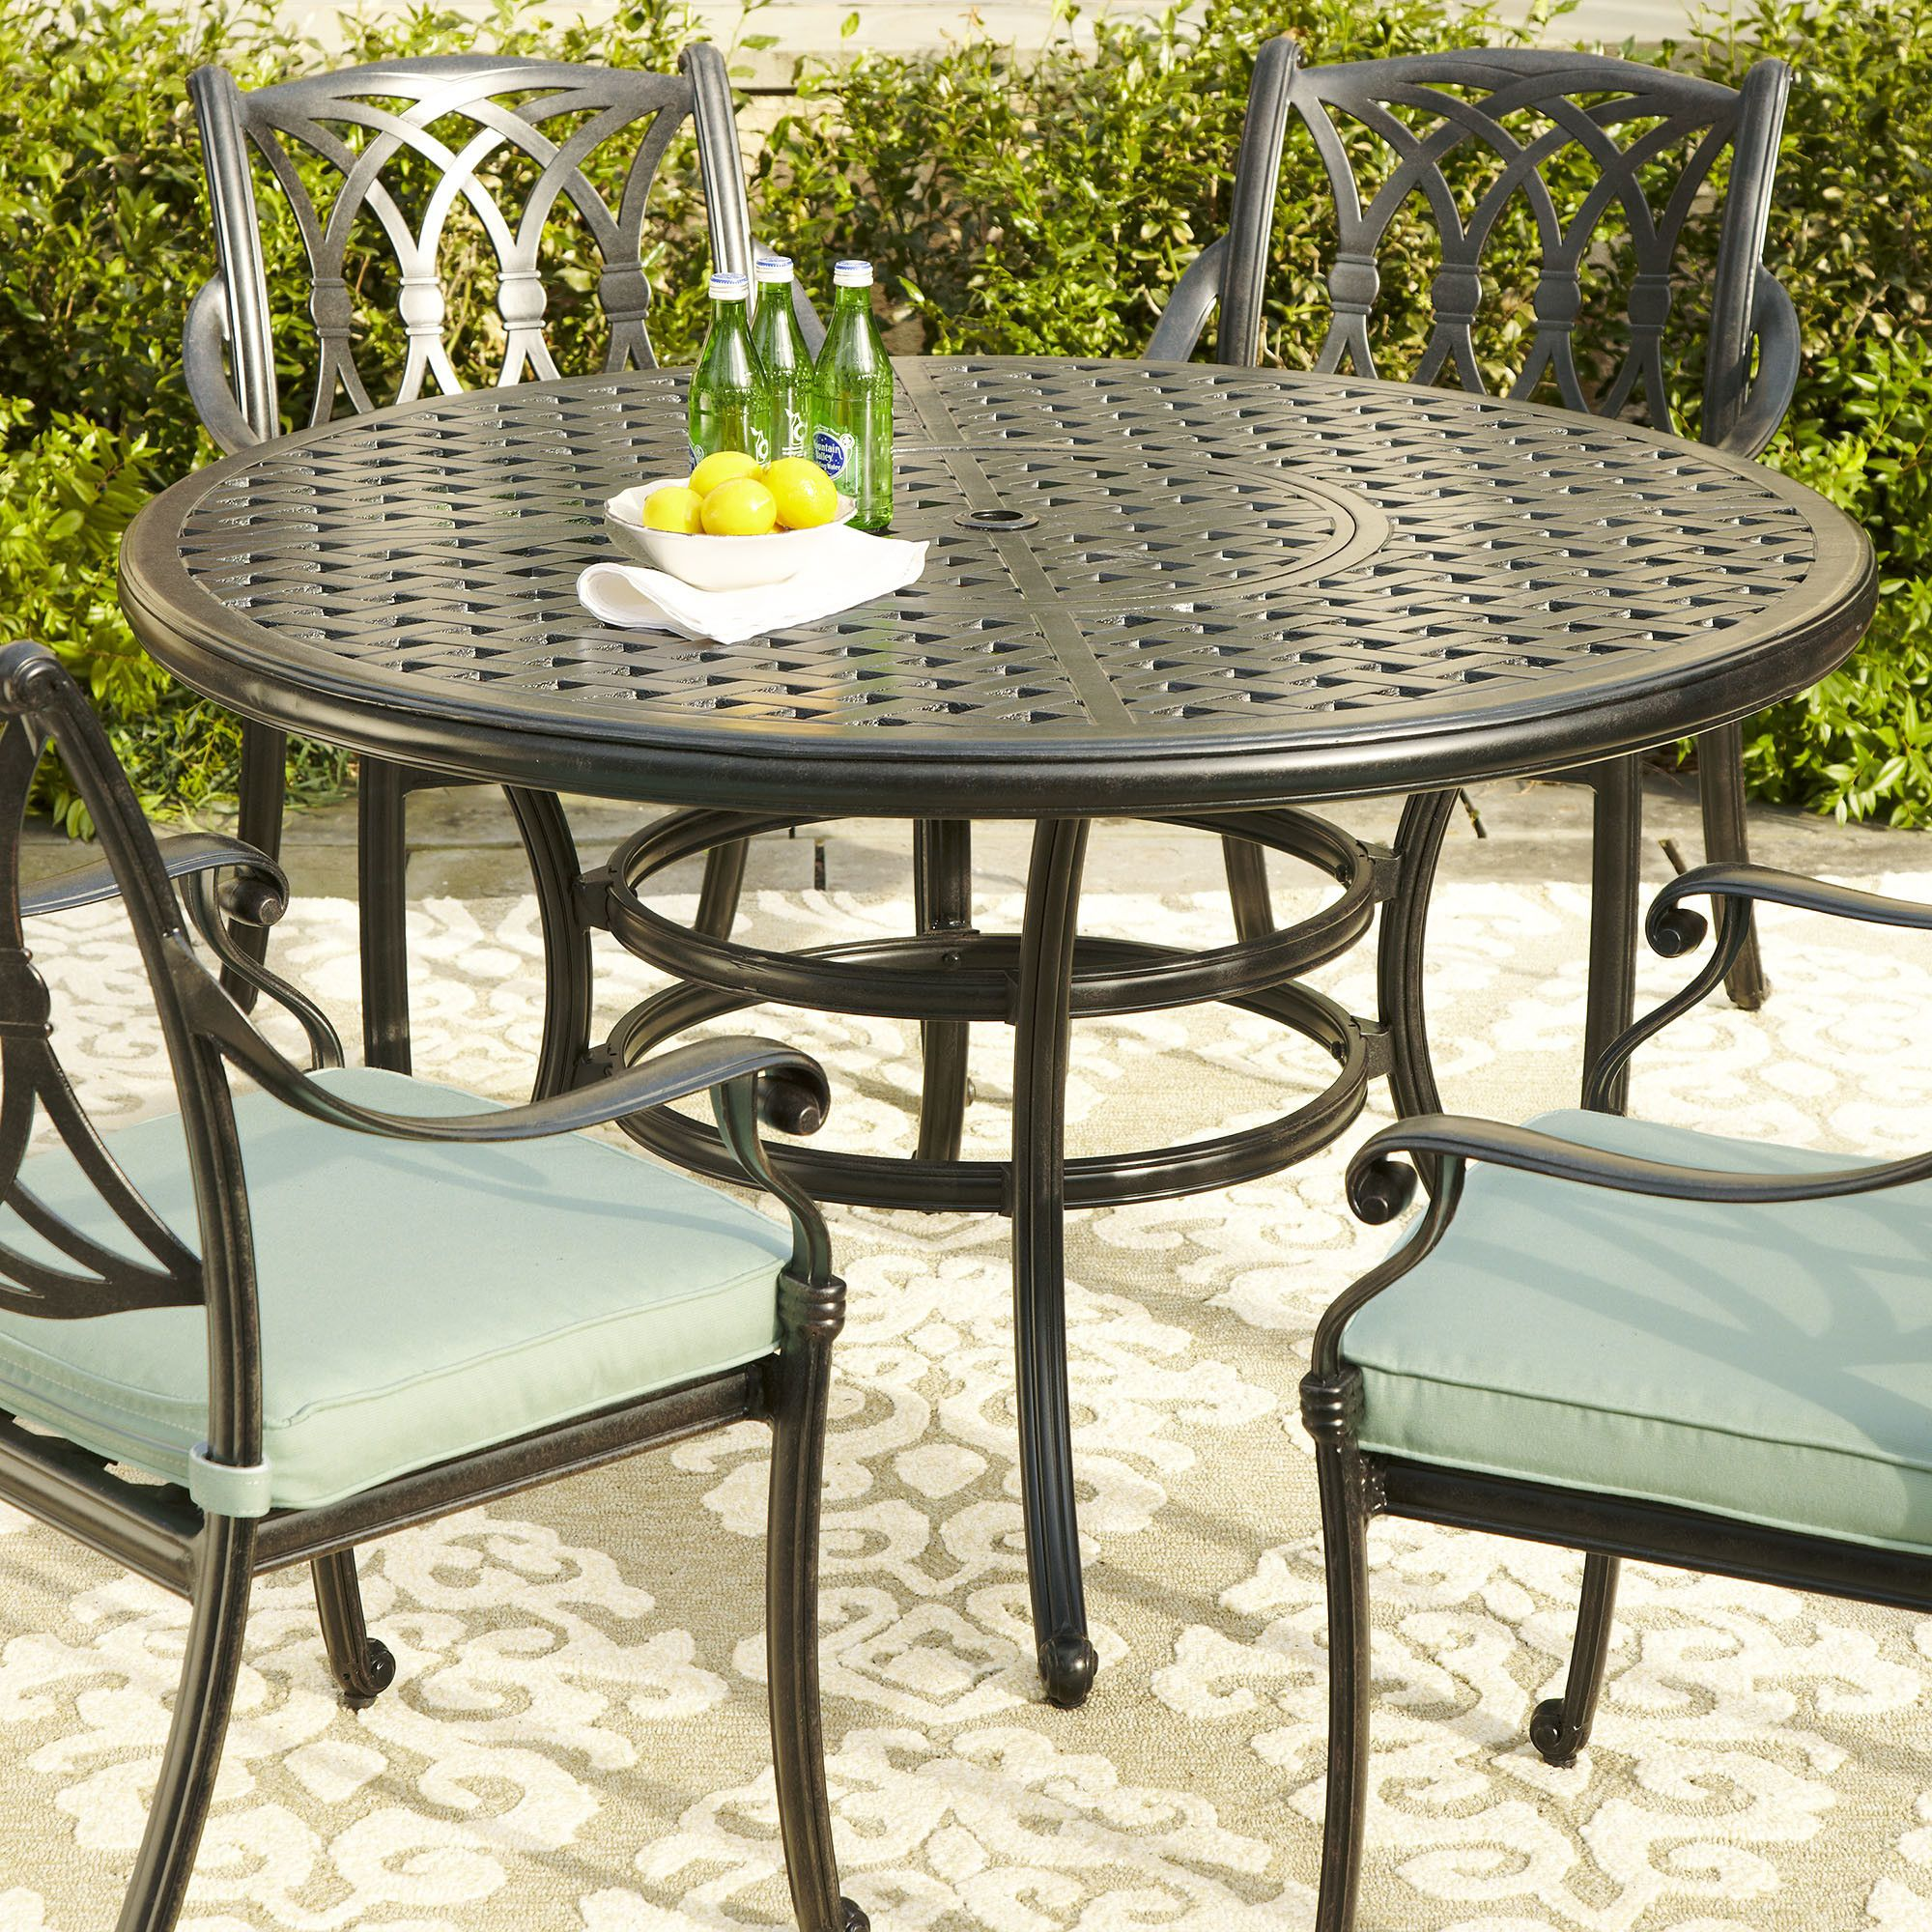 36+ Round patio dining sets for 4 Best